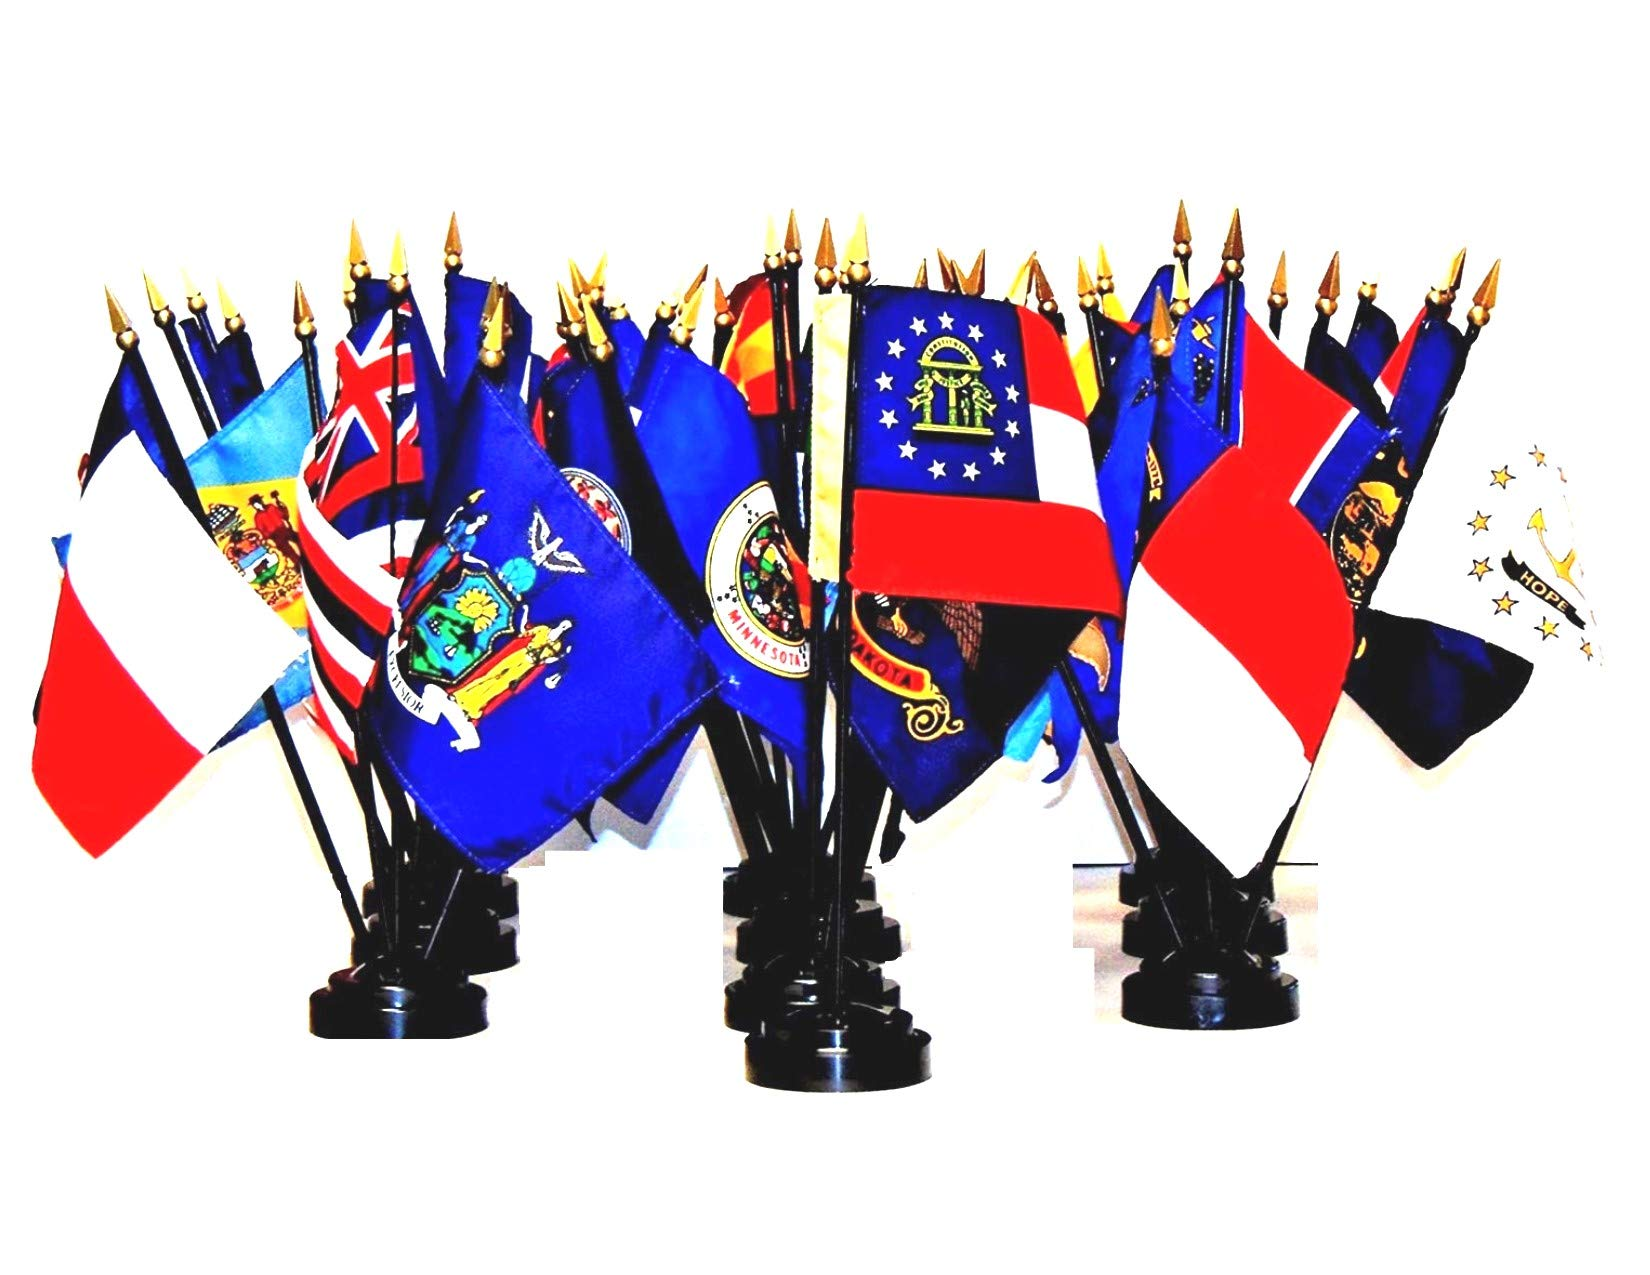 Made in The USA!! 50-State World Flag Set with Bases-50 Rayon 4''x6'' Flags, One Flag for Each State and Ten 5-Hole Bases; 4x6 Miniature Desk & Table Flags, Small Mini Stick Flags